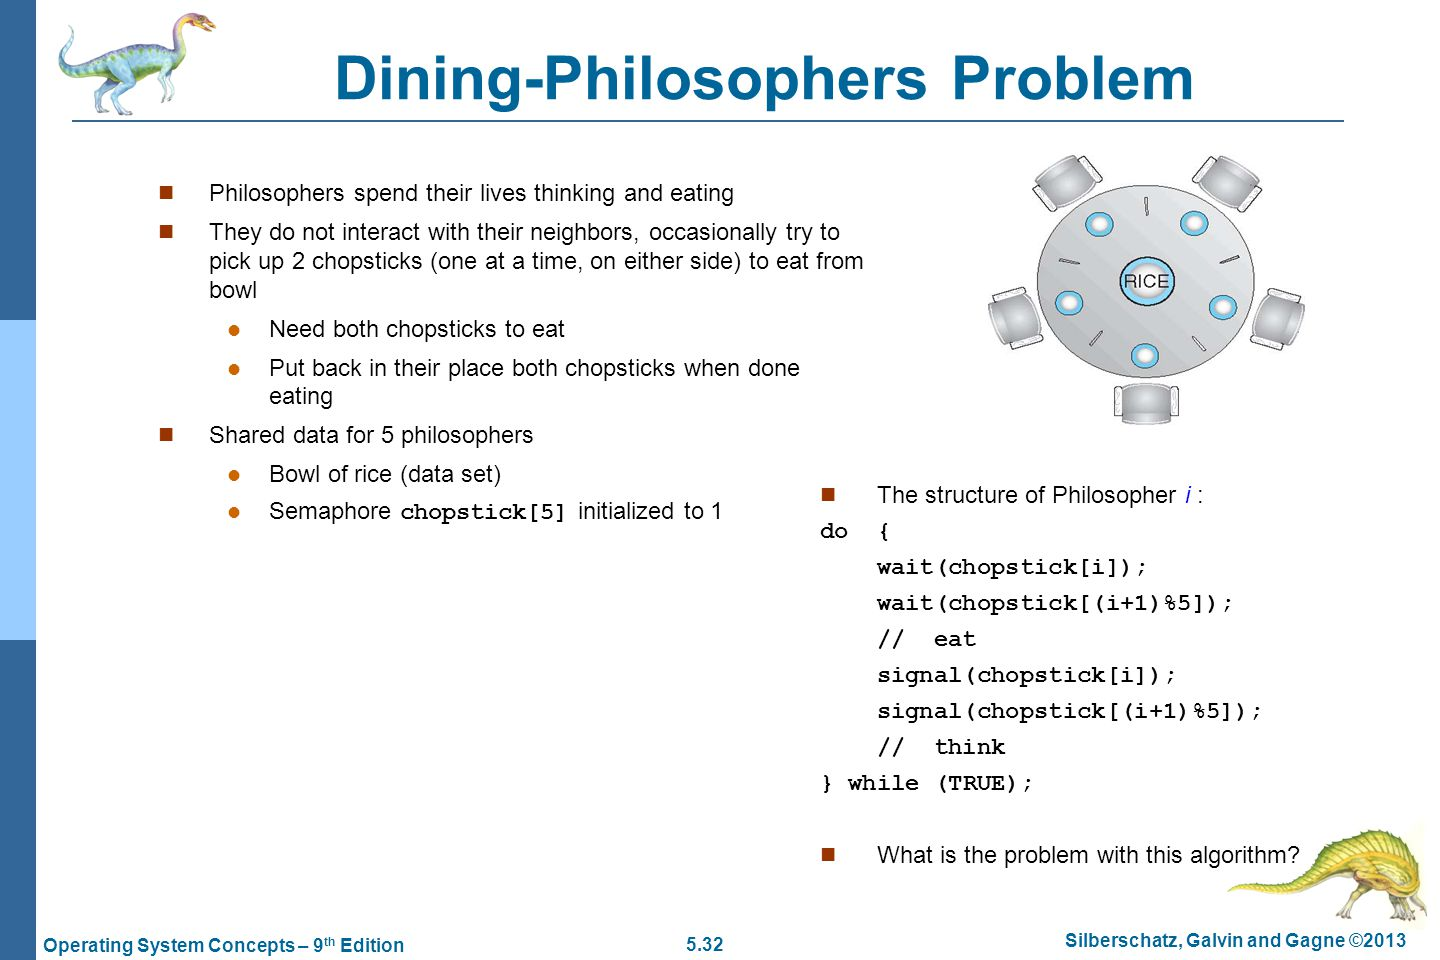 5.32 Silberschatz, Galvin and Gagne ©2013 Operating System Concepts – 9 th Edition Dining-Philosophers Problem Philosophers spend their lives thinking and eating They do not interact with their neighbors, occasionally try to pick up 2 chopsticks (one at a time, on either side) to eat from bowl Need both chopsticks to eat Put back in their place both chopsticks when done eating Shared data for 5 philosophers Bowl of rice (data set) Semaphore chopstick[5] initialized to 1 The structure of Philosopher i : do { wait(chopstick[i]); wait(chopstick[(i+1)%5]); // eat signal(chopstick[i]); signal(chopstick[(i+1)%5]); // think } while (TRUE); What is the problem with this algorithm?